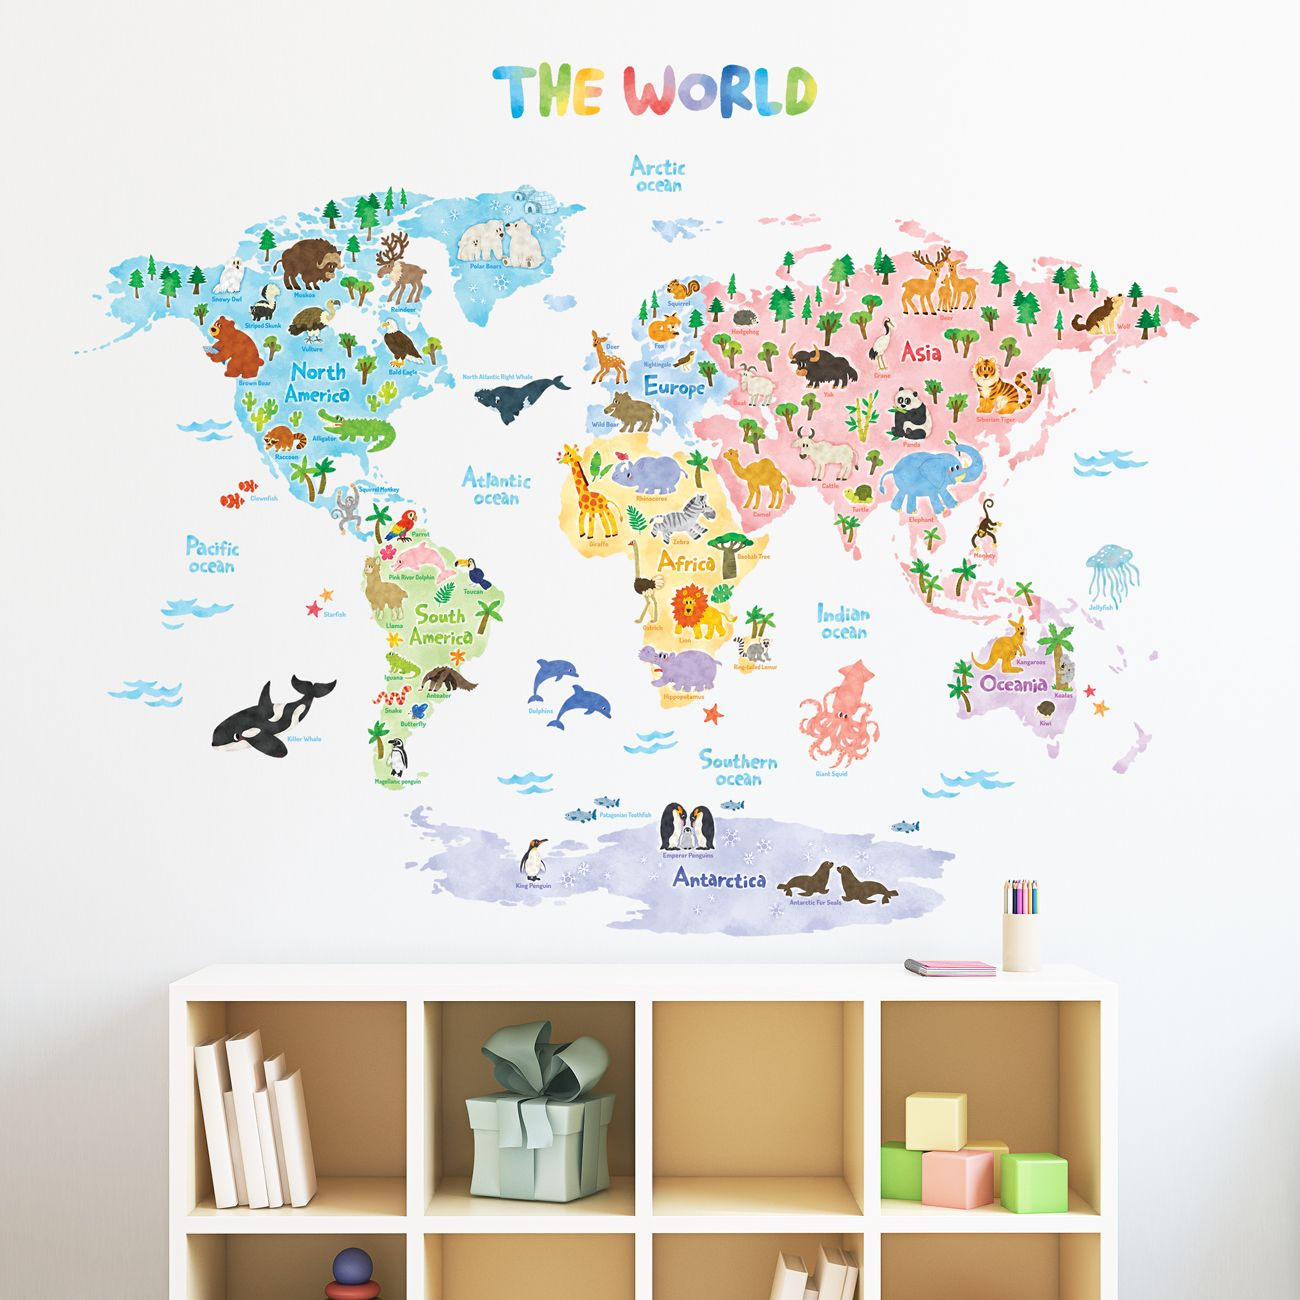 Animal world map wall sticker you can also buy this product in animal world map wall sticker you can also buy this product in amazon https gumiabroncs Gallery